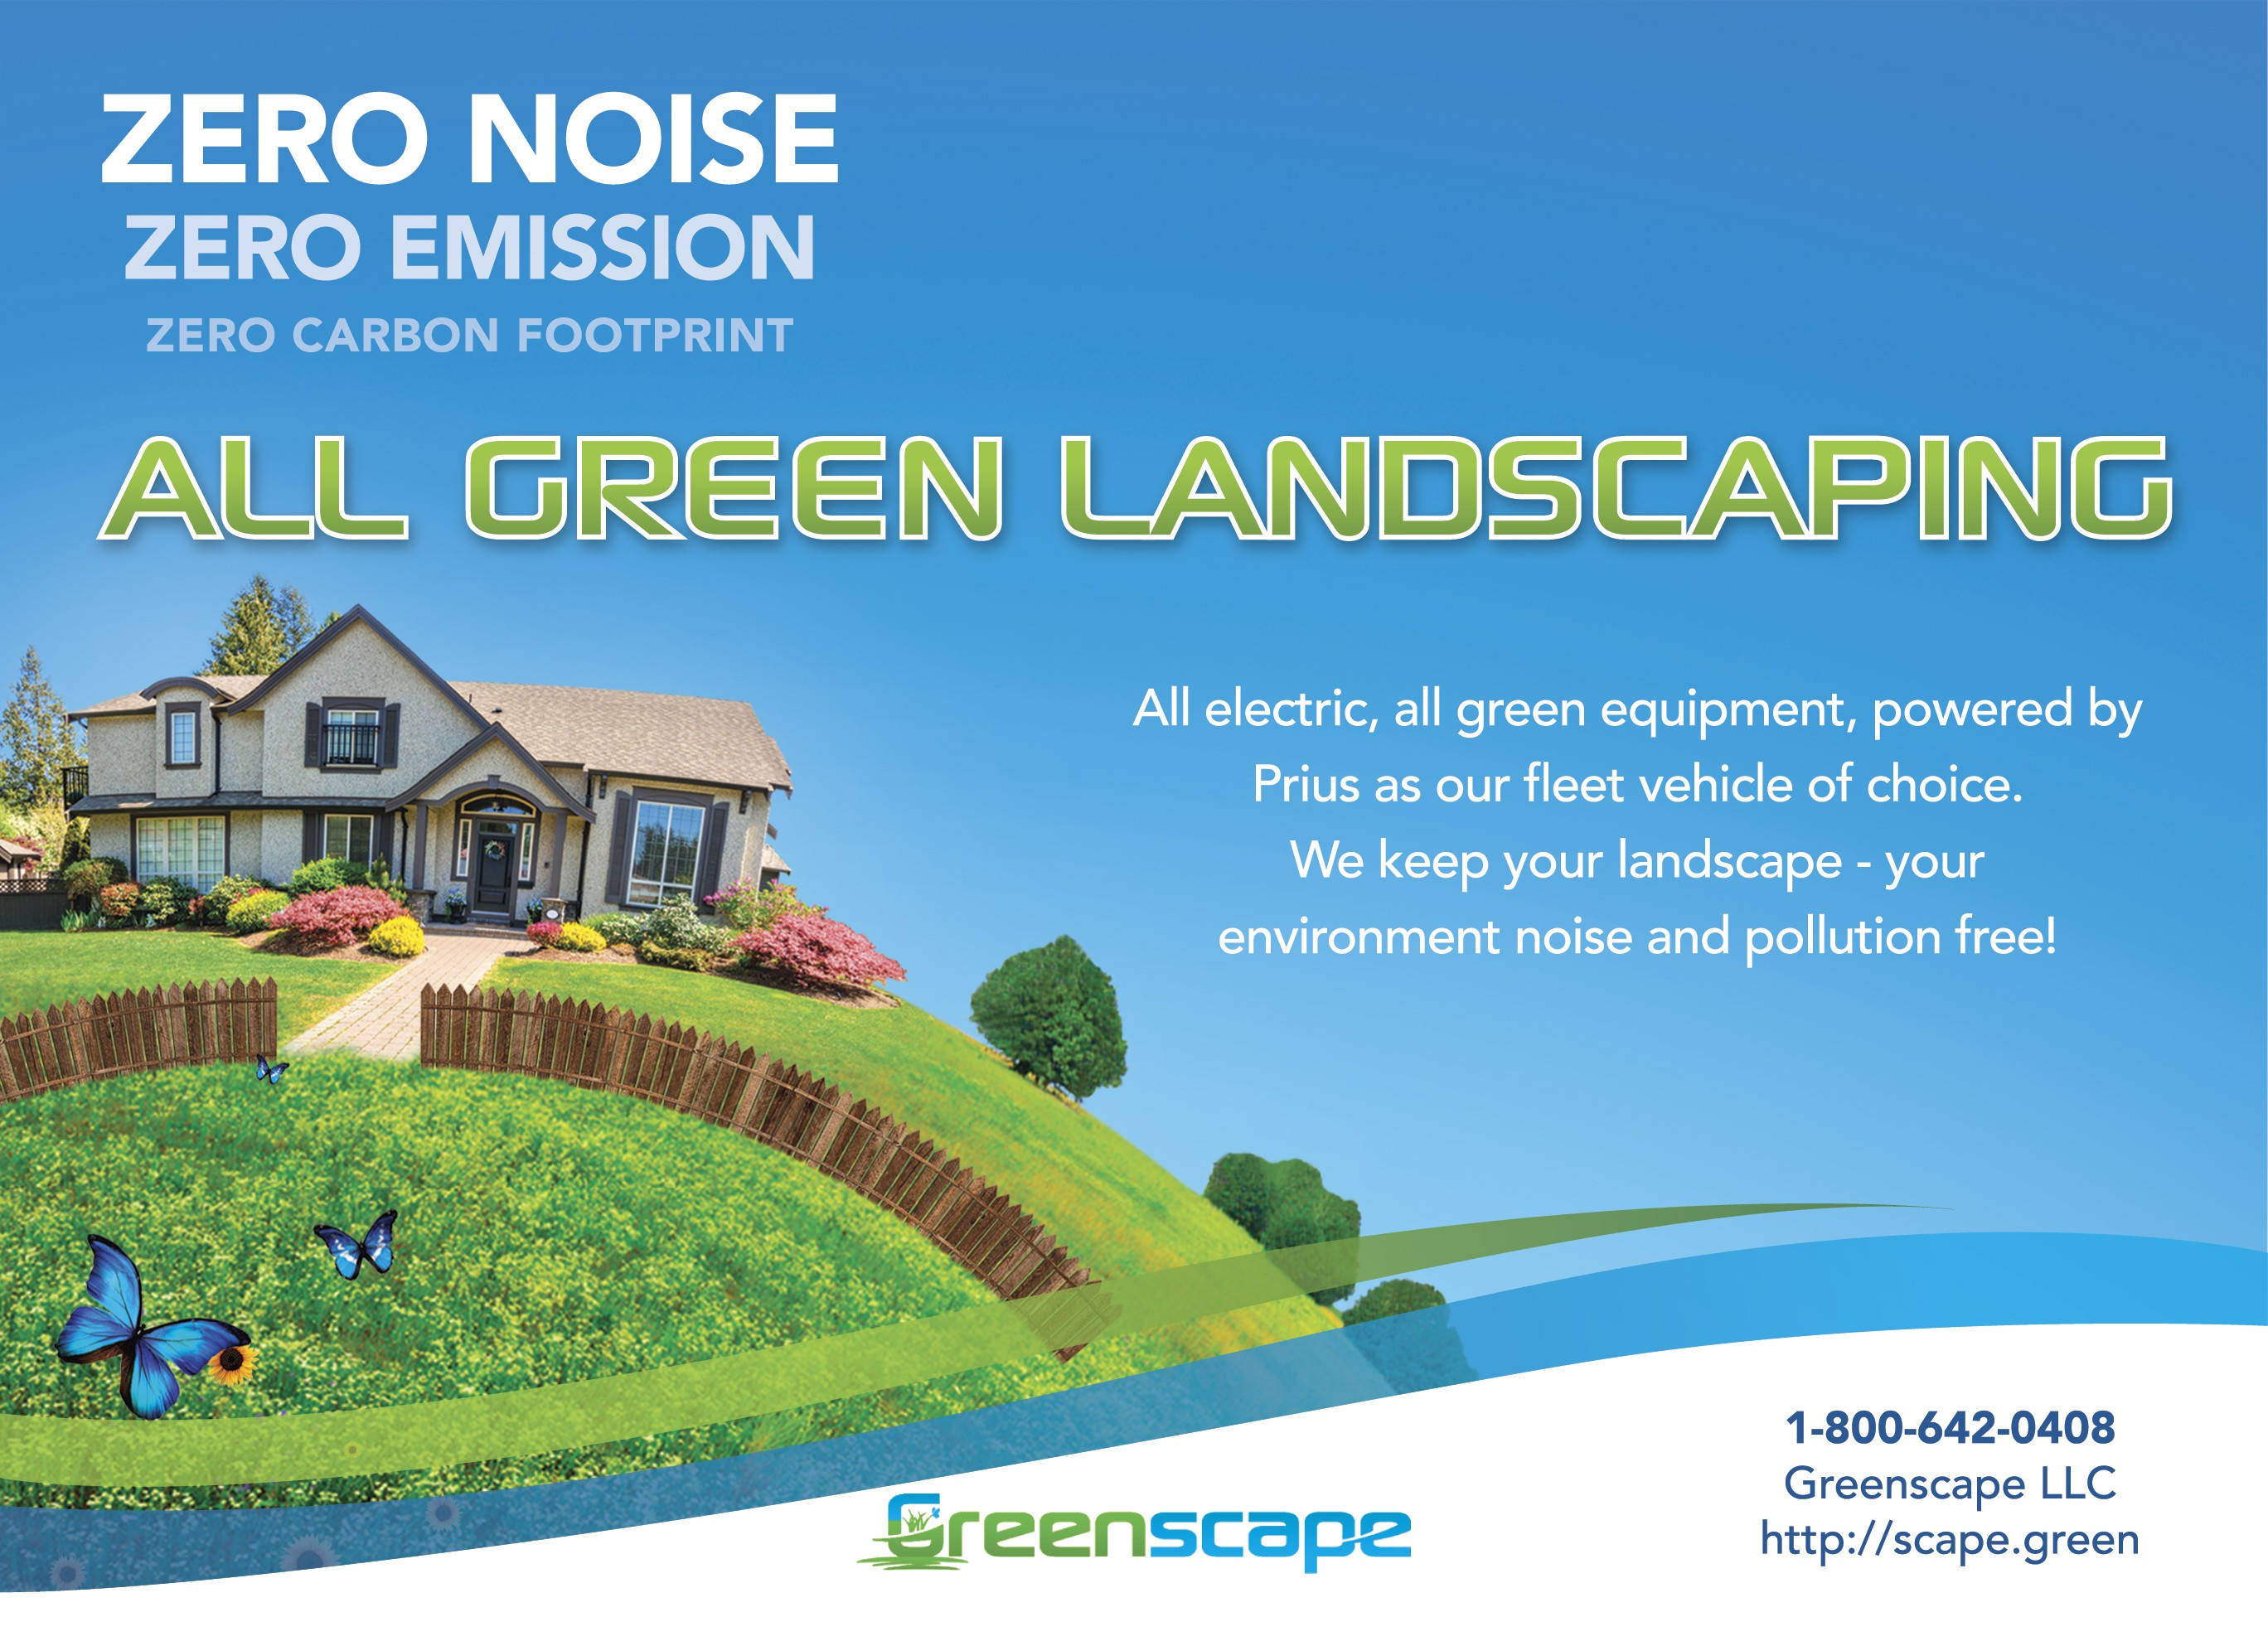 All Green Landscaping - Greenscape needs an attention grabbing flyer